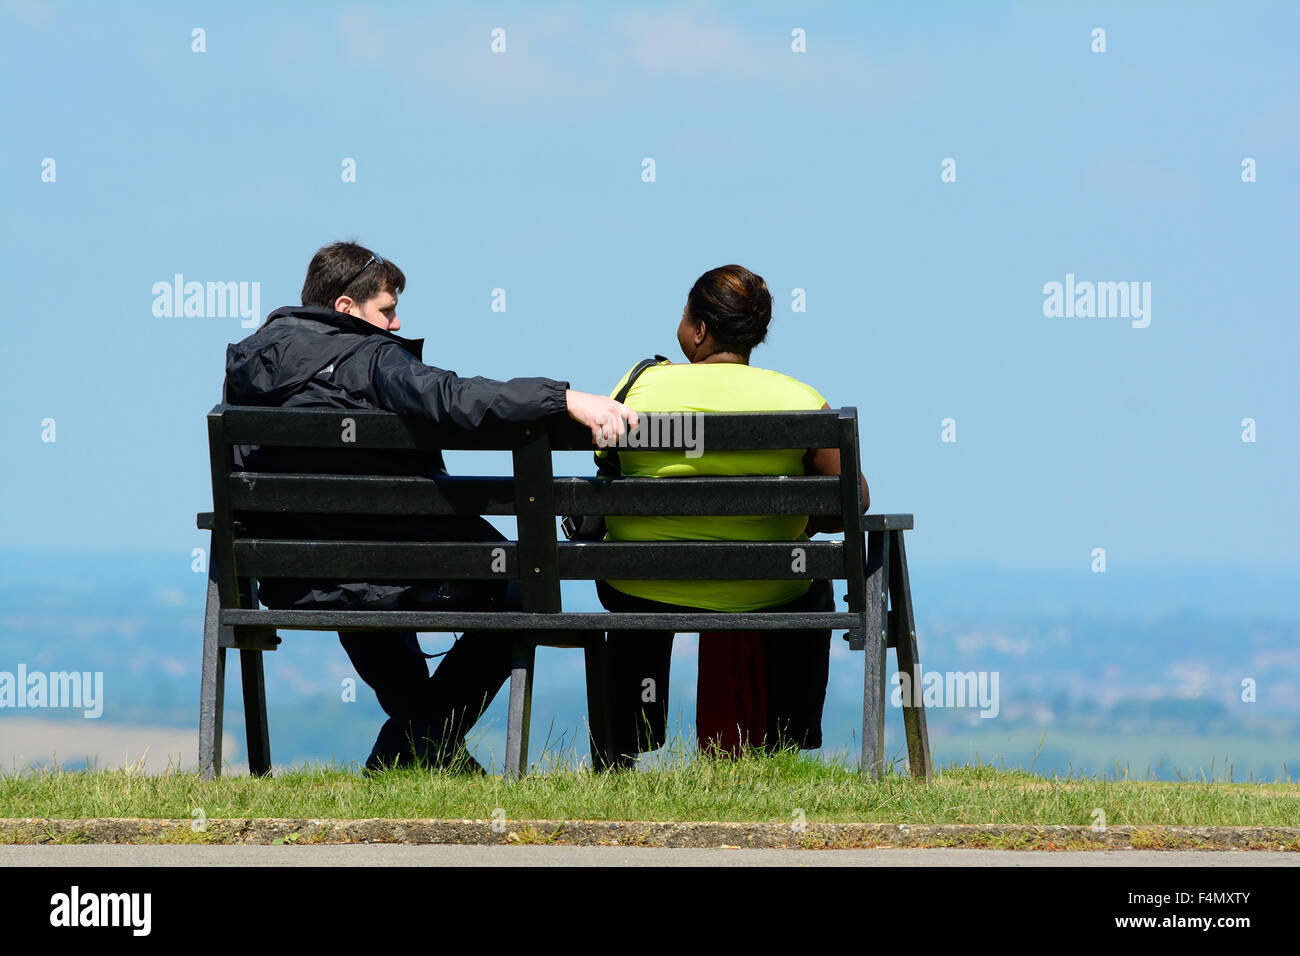 Caucasian man sitting on bench with Afro-Caribbean woman - Stock Image